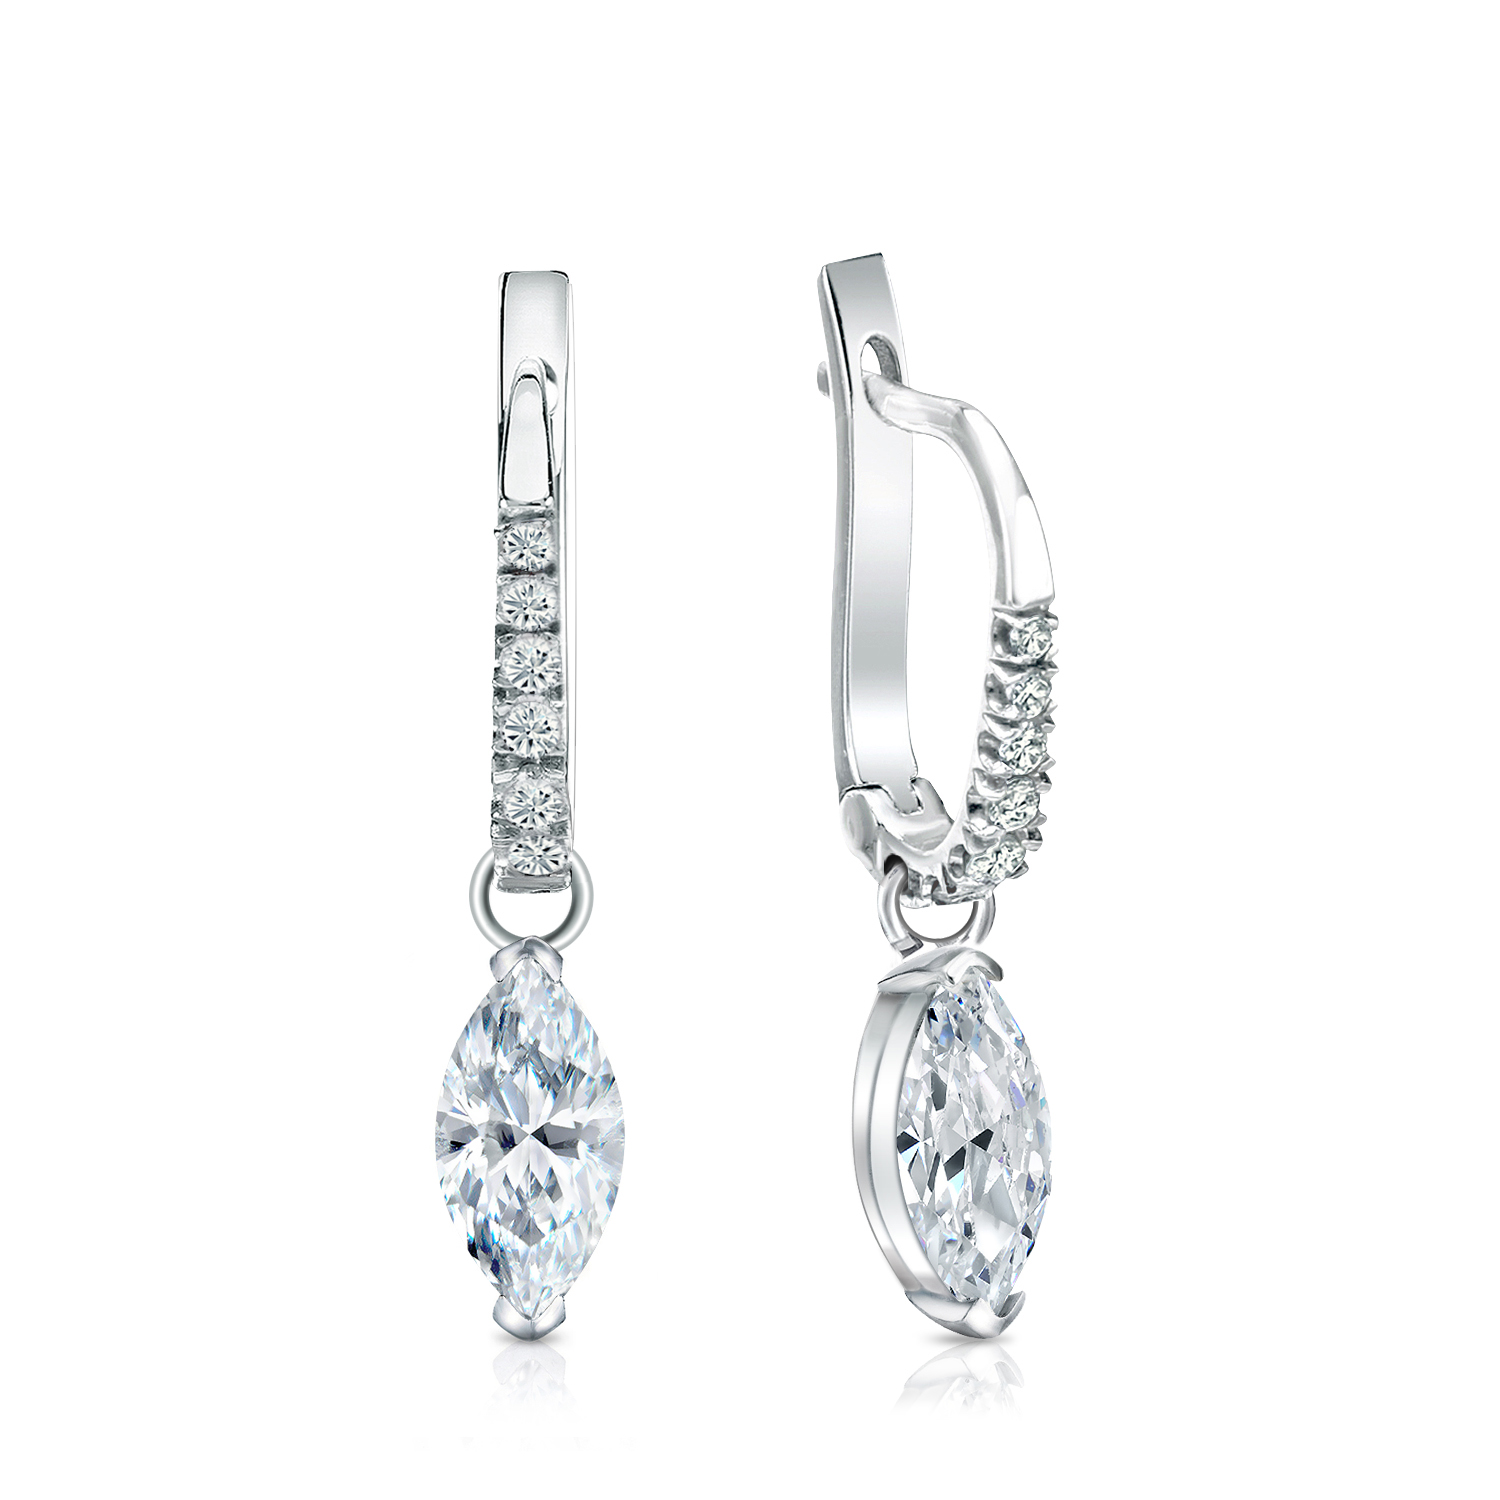 Dangle V-End Prong Diamond Earrings in 14k White Gold